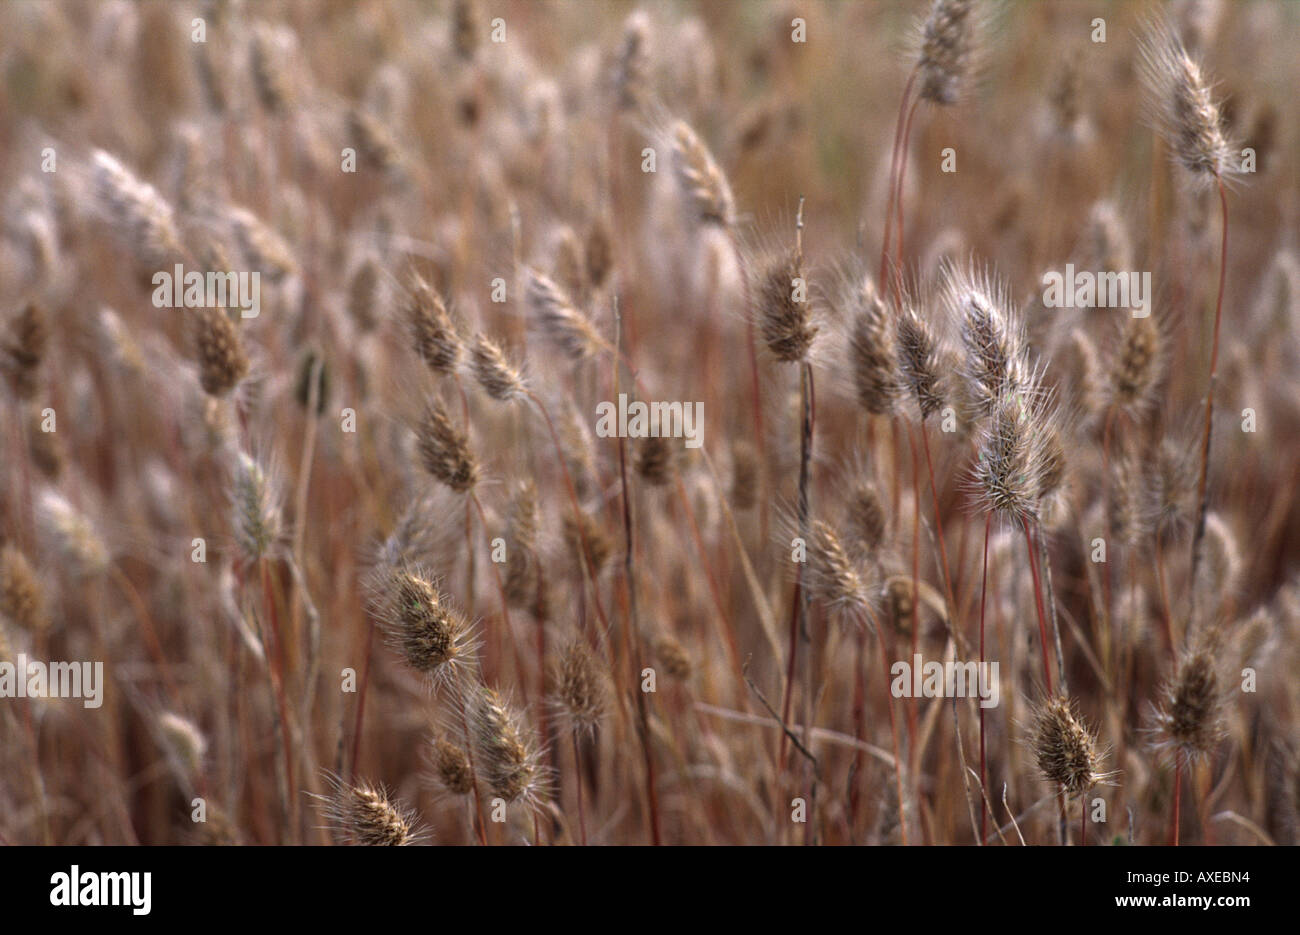 Close up of the ears of grasses illuminated by the sun - Stock Image